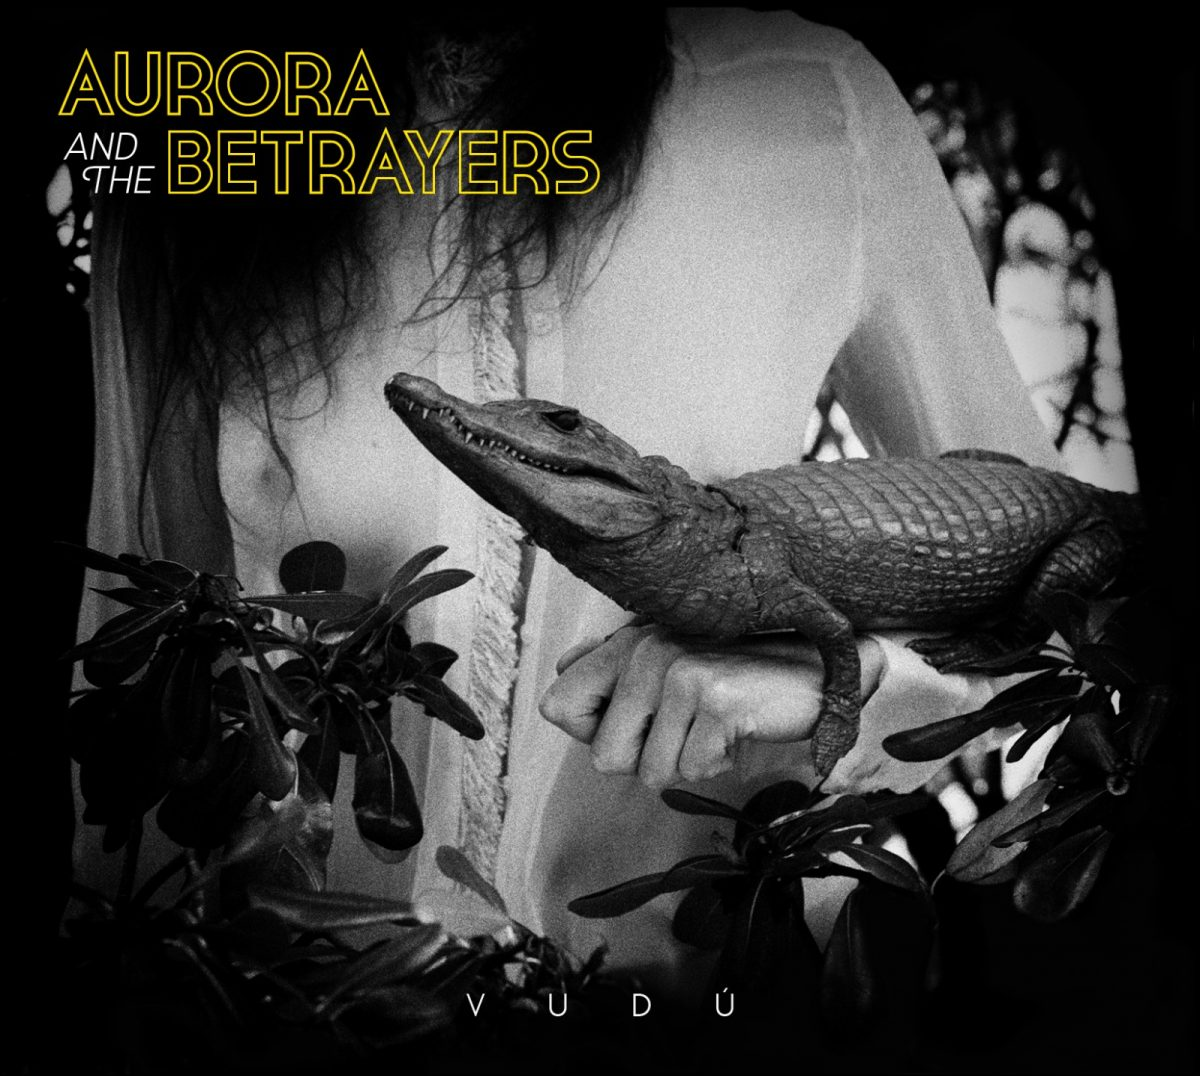 AURORA AND THE BETRAYERS